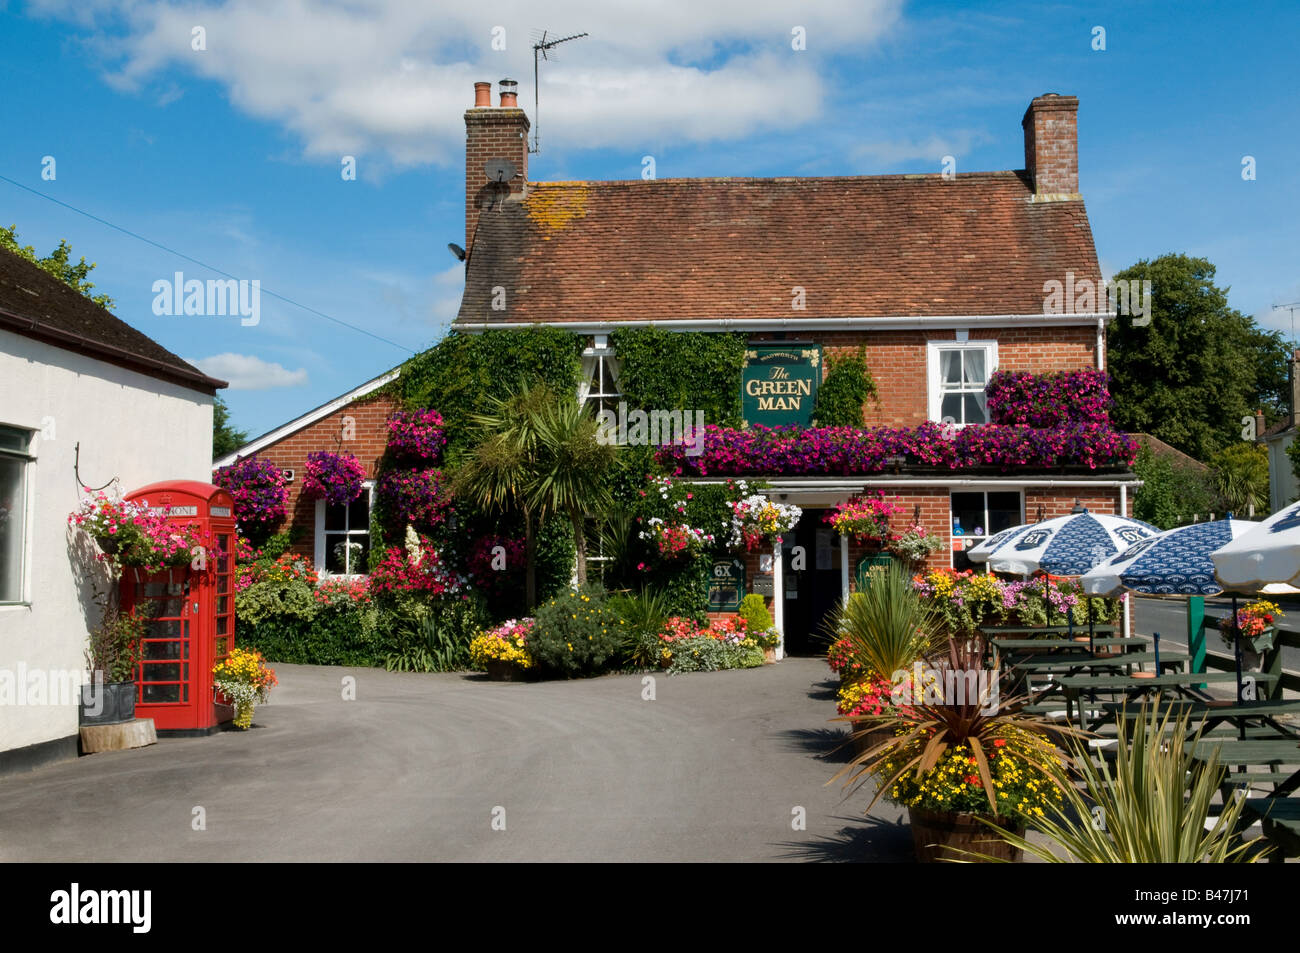 Typical English  pub in the summer time surrounded by summer flowers, located in Wimborne, Dorset, England, UK - Stock Image